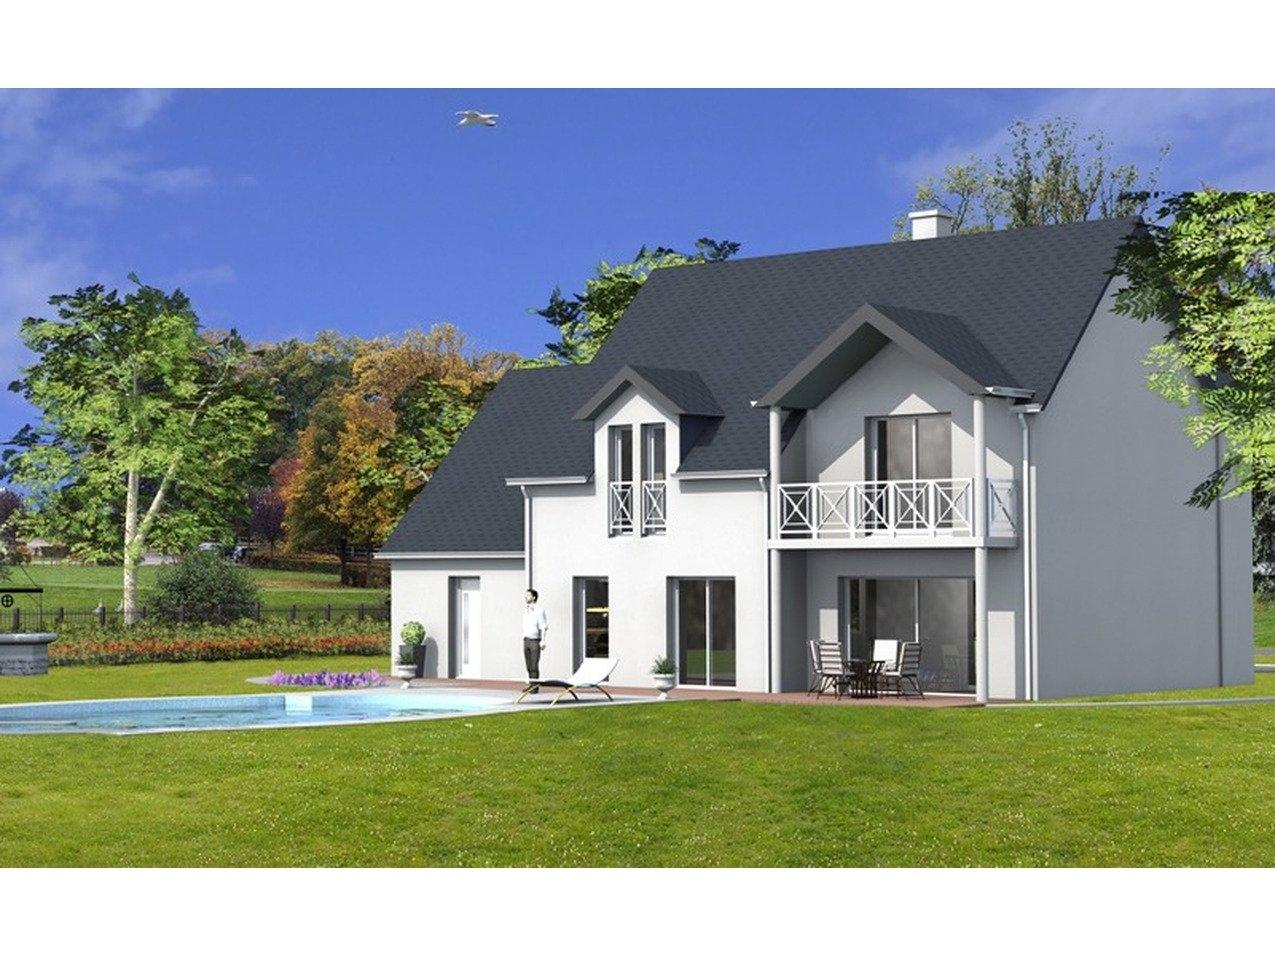 Prix D Une Maison Neuve Of Beautiful Best Photo Maison Neuve Bretagne With Modele De